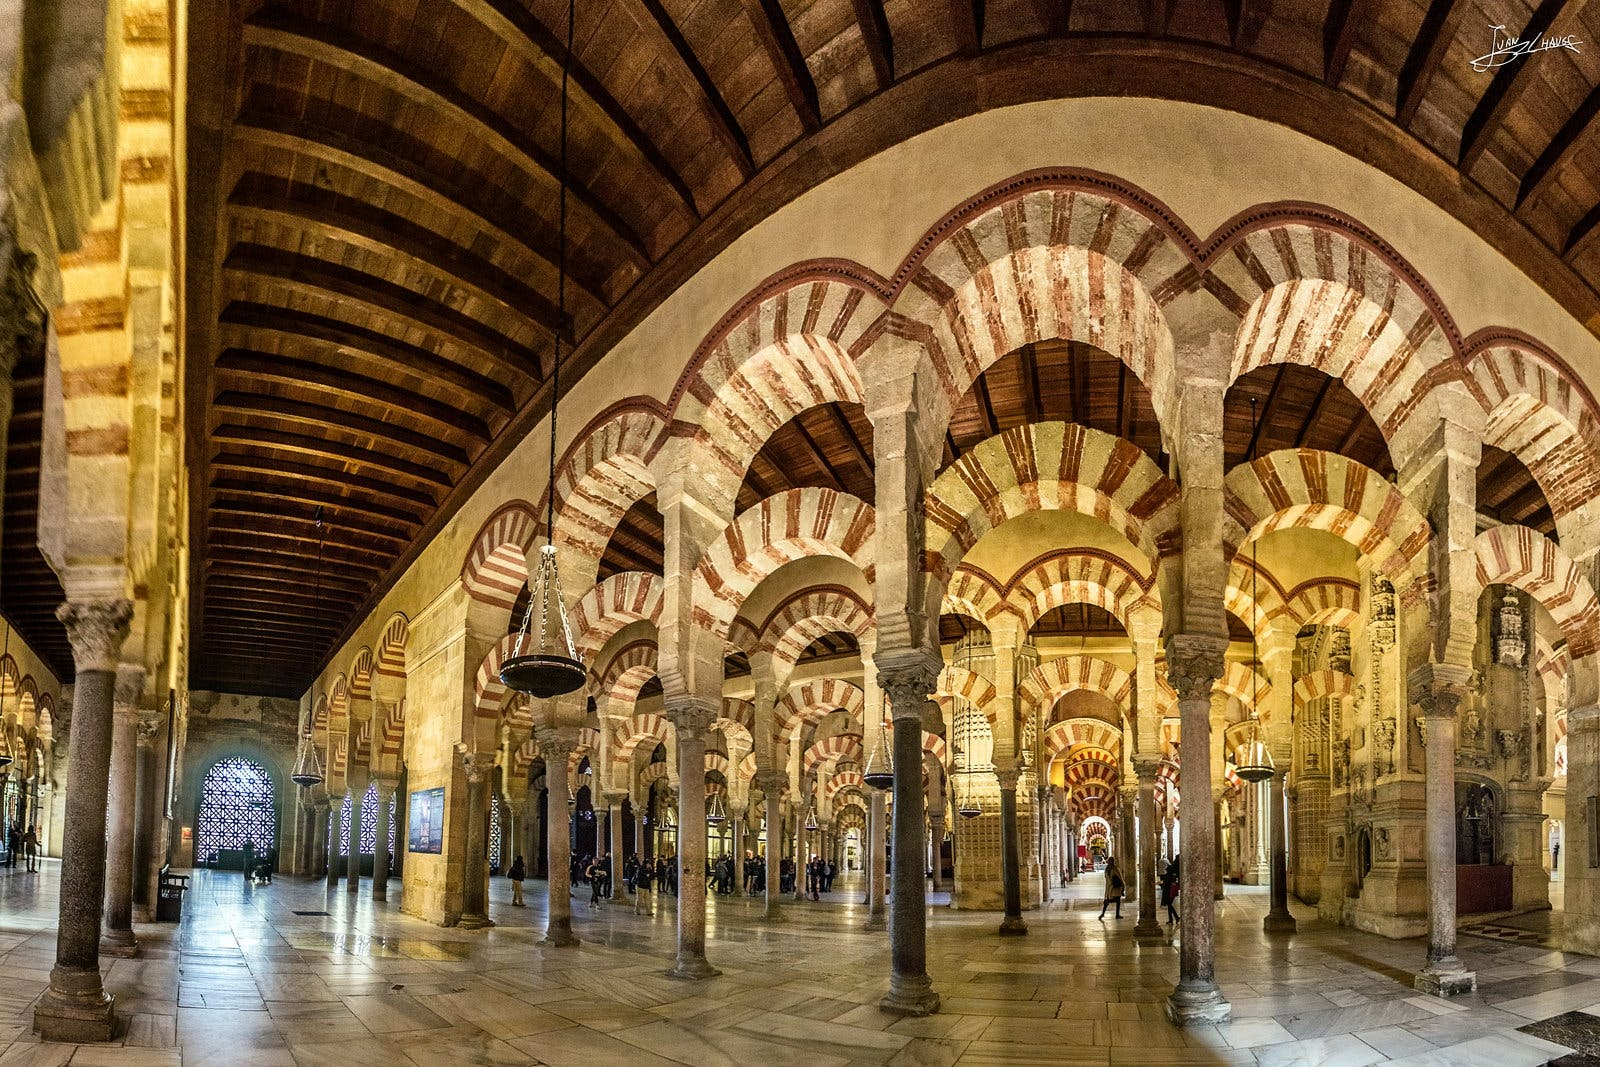 Mosque-Cathedral of Cordoba visit with an official guide